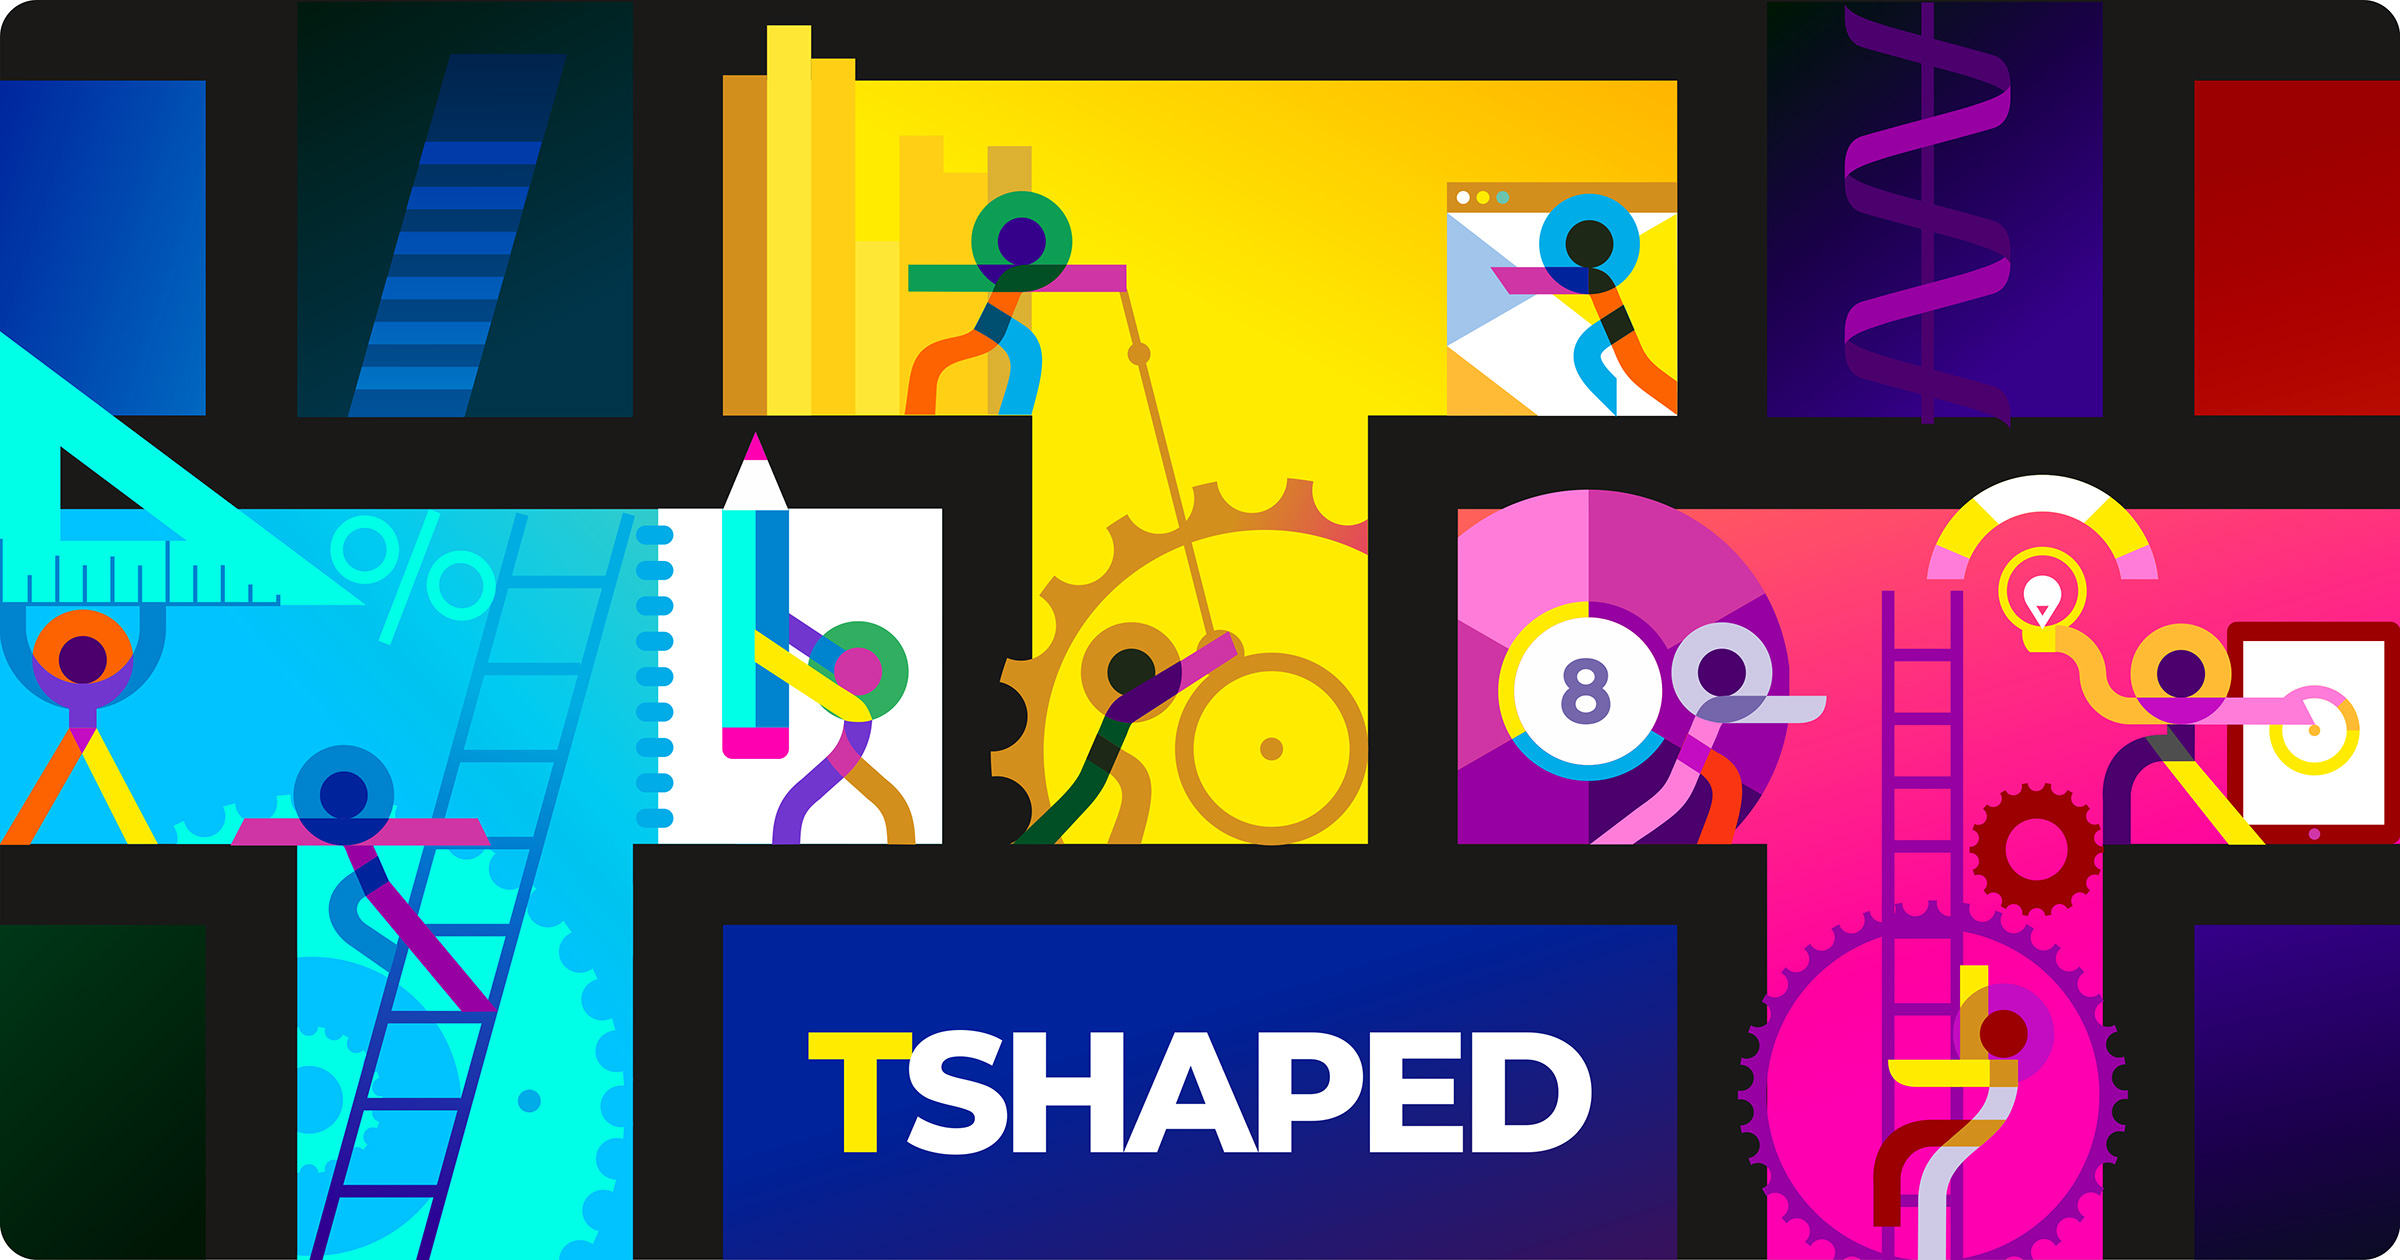 How to apply T-shaped skills in product development